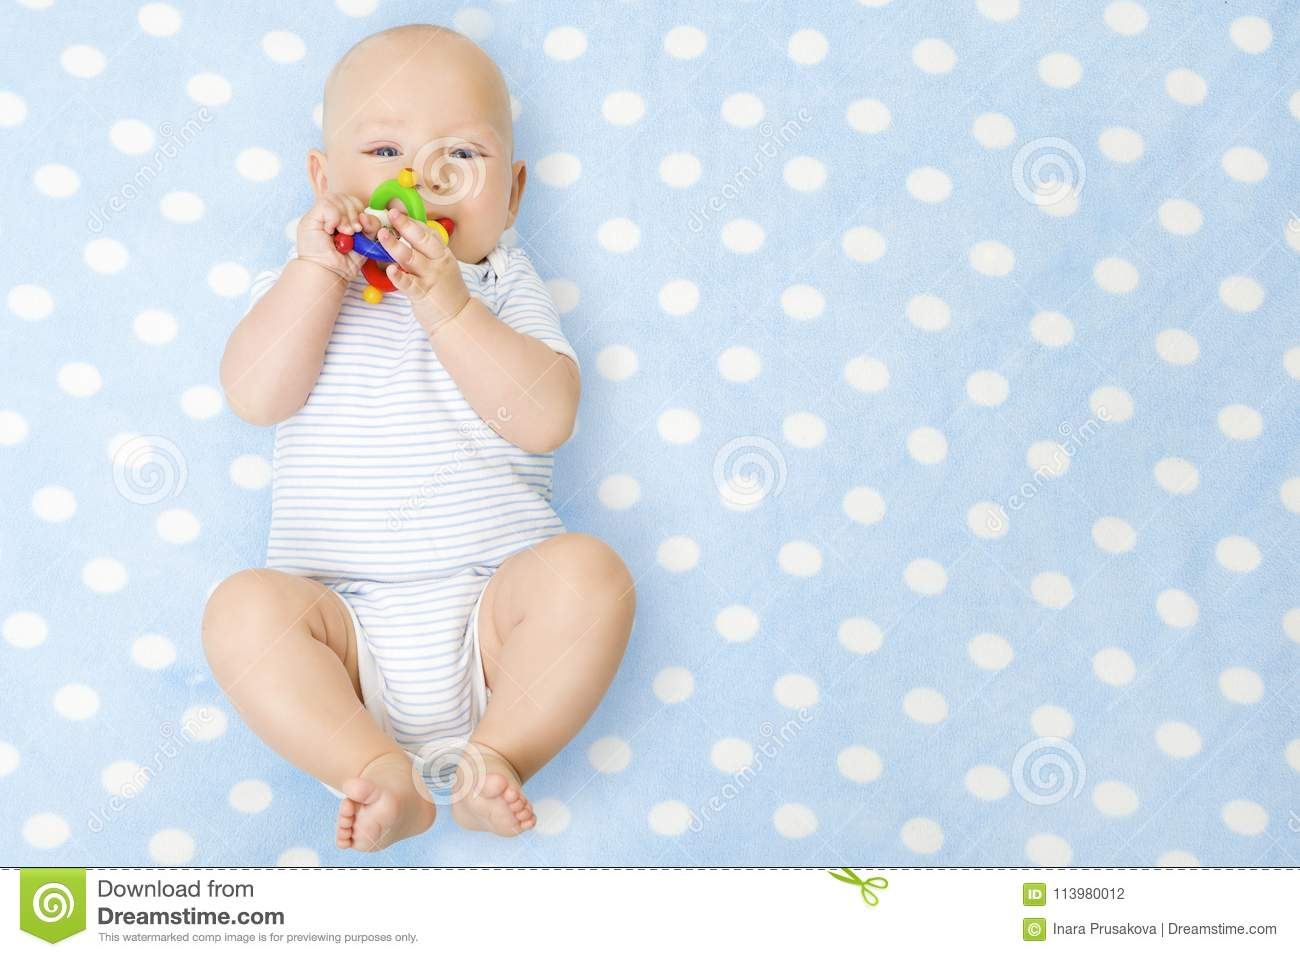 Baby Boy with Teether Toy In Mouth Lying over Blue Background, Happy